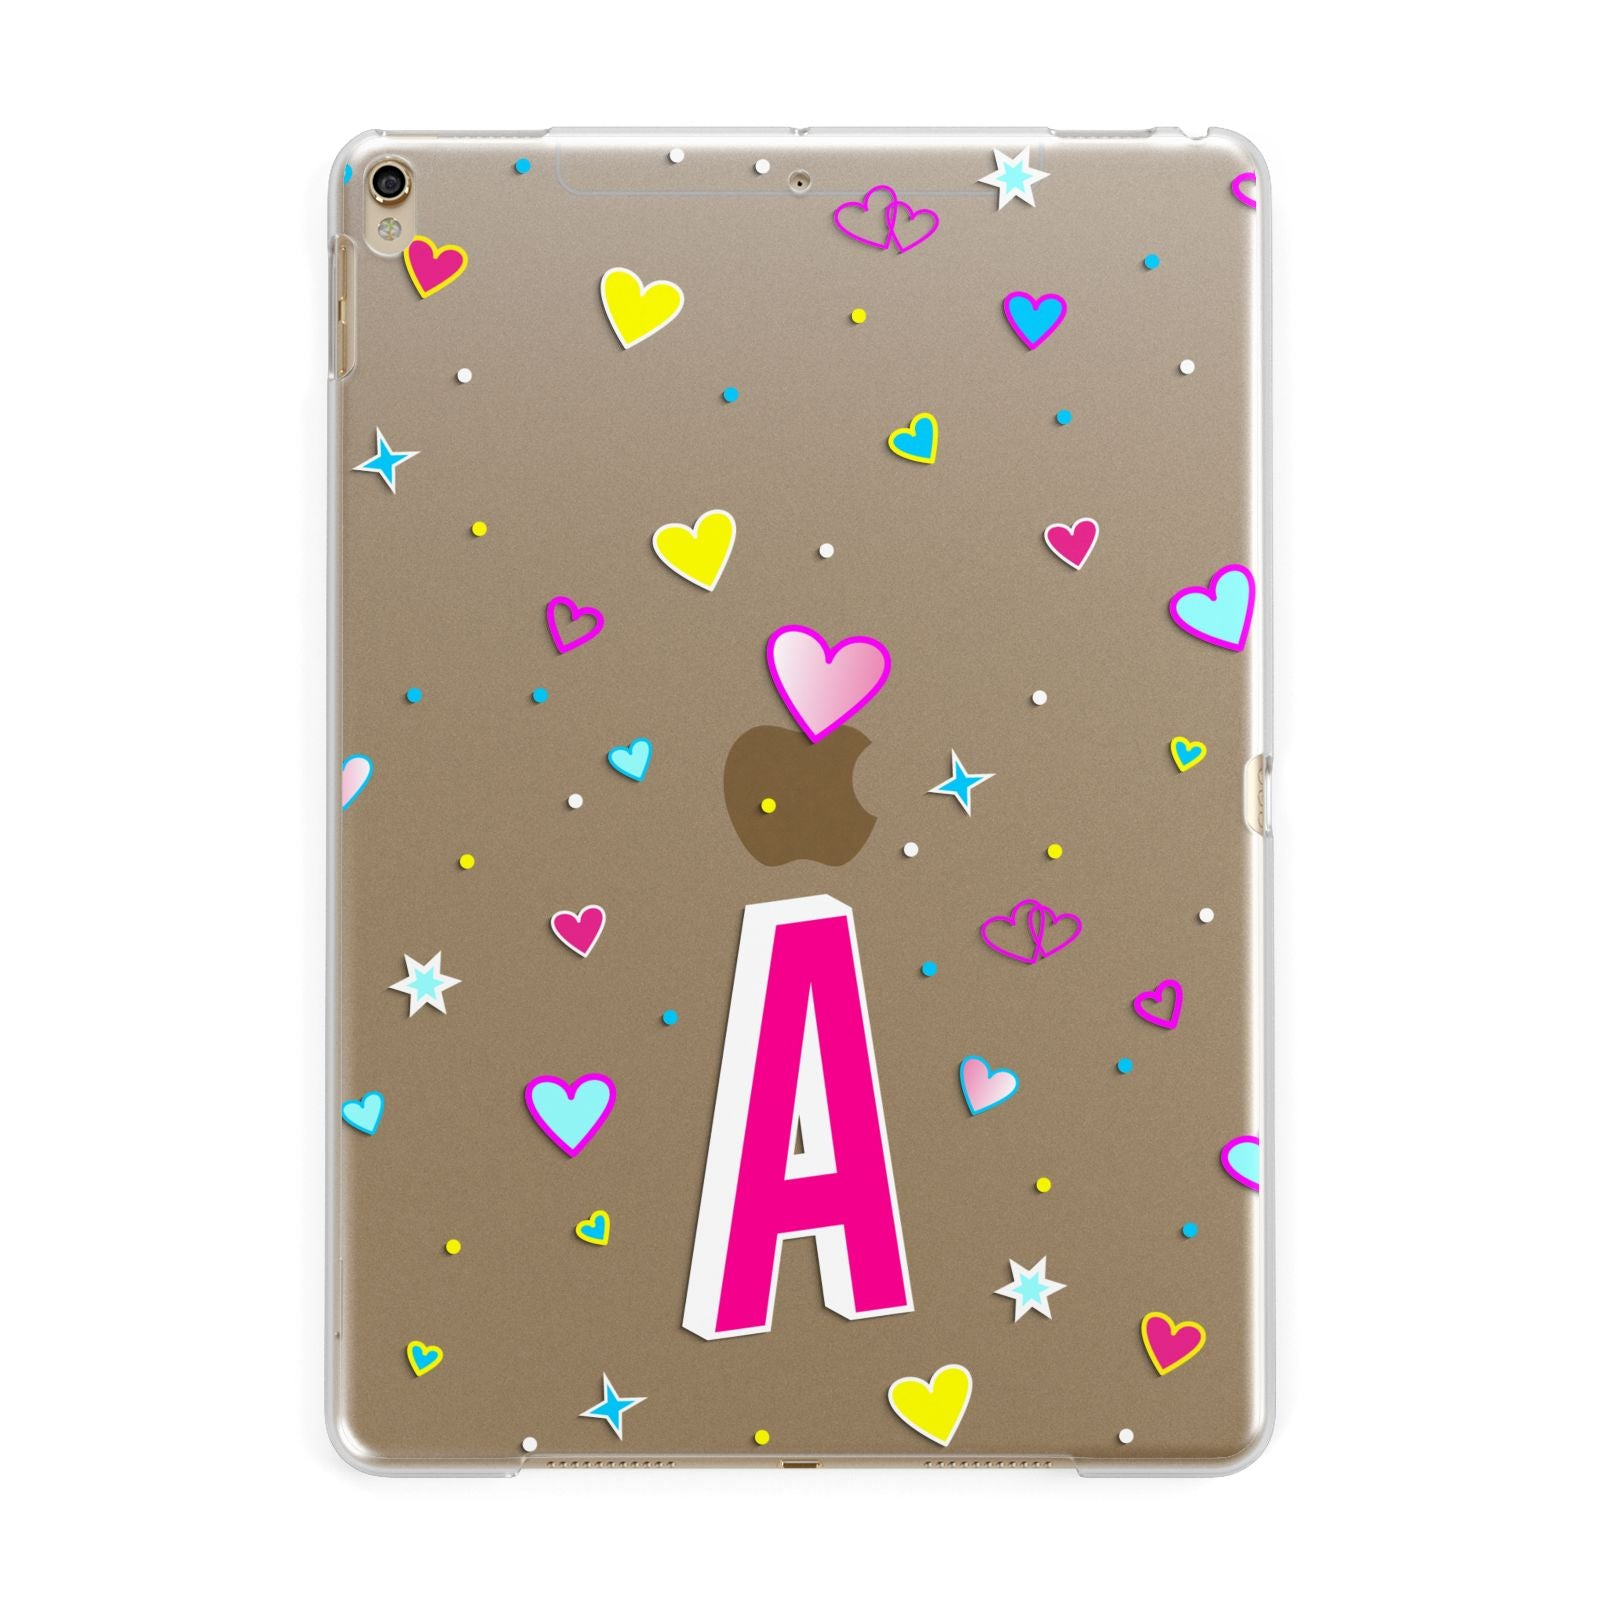 49b24e0185 Personalised-Heart-Alphabet-Clear-Apple-iPad -Gold-Case_2000x.jpg?v=1559825950